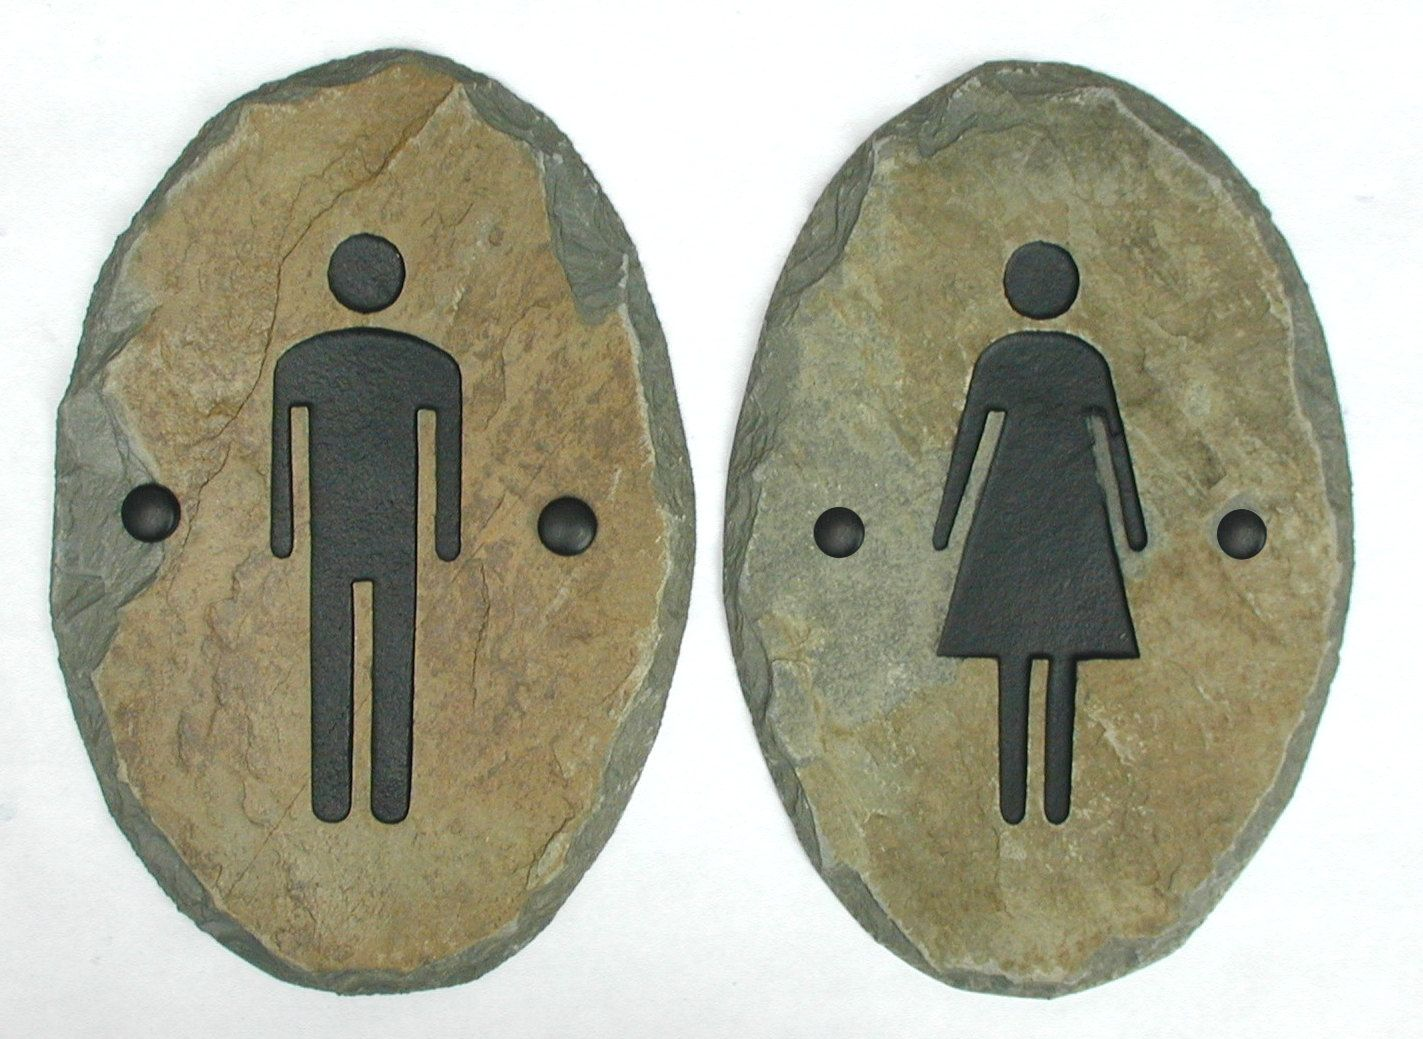 Rustic Toilet Signs Google Search